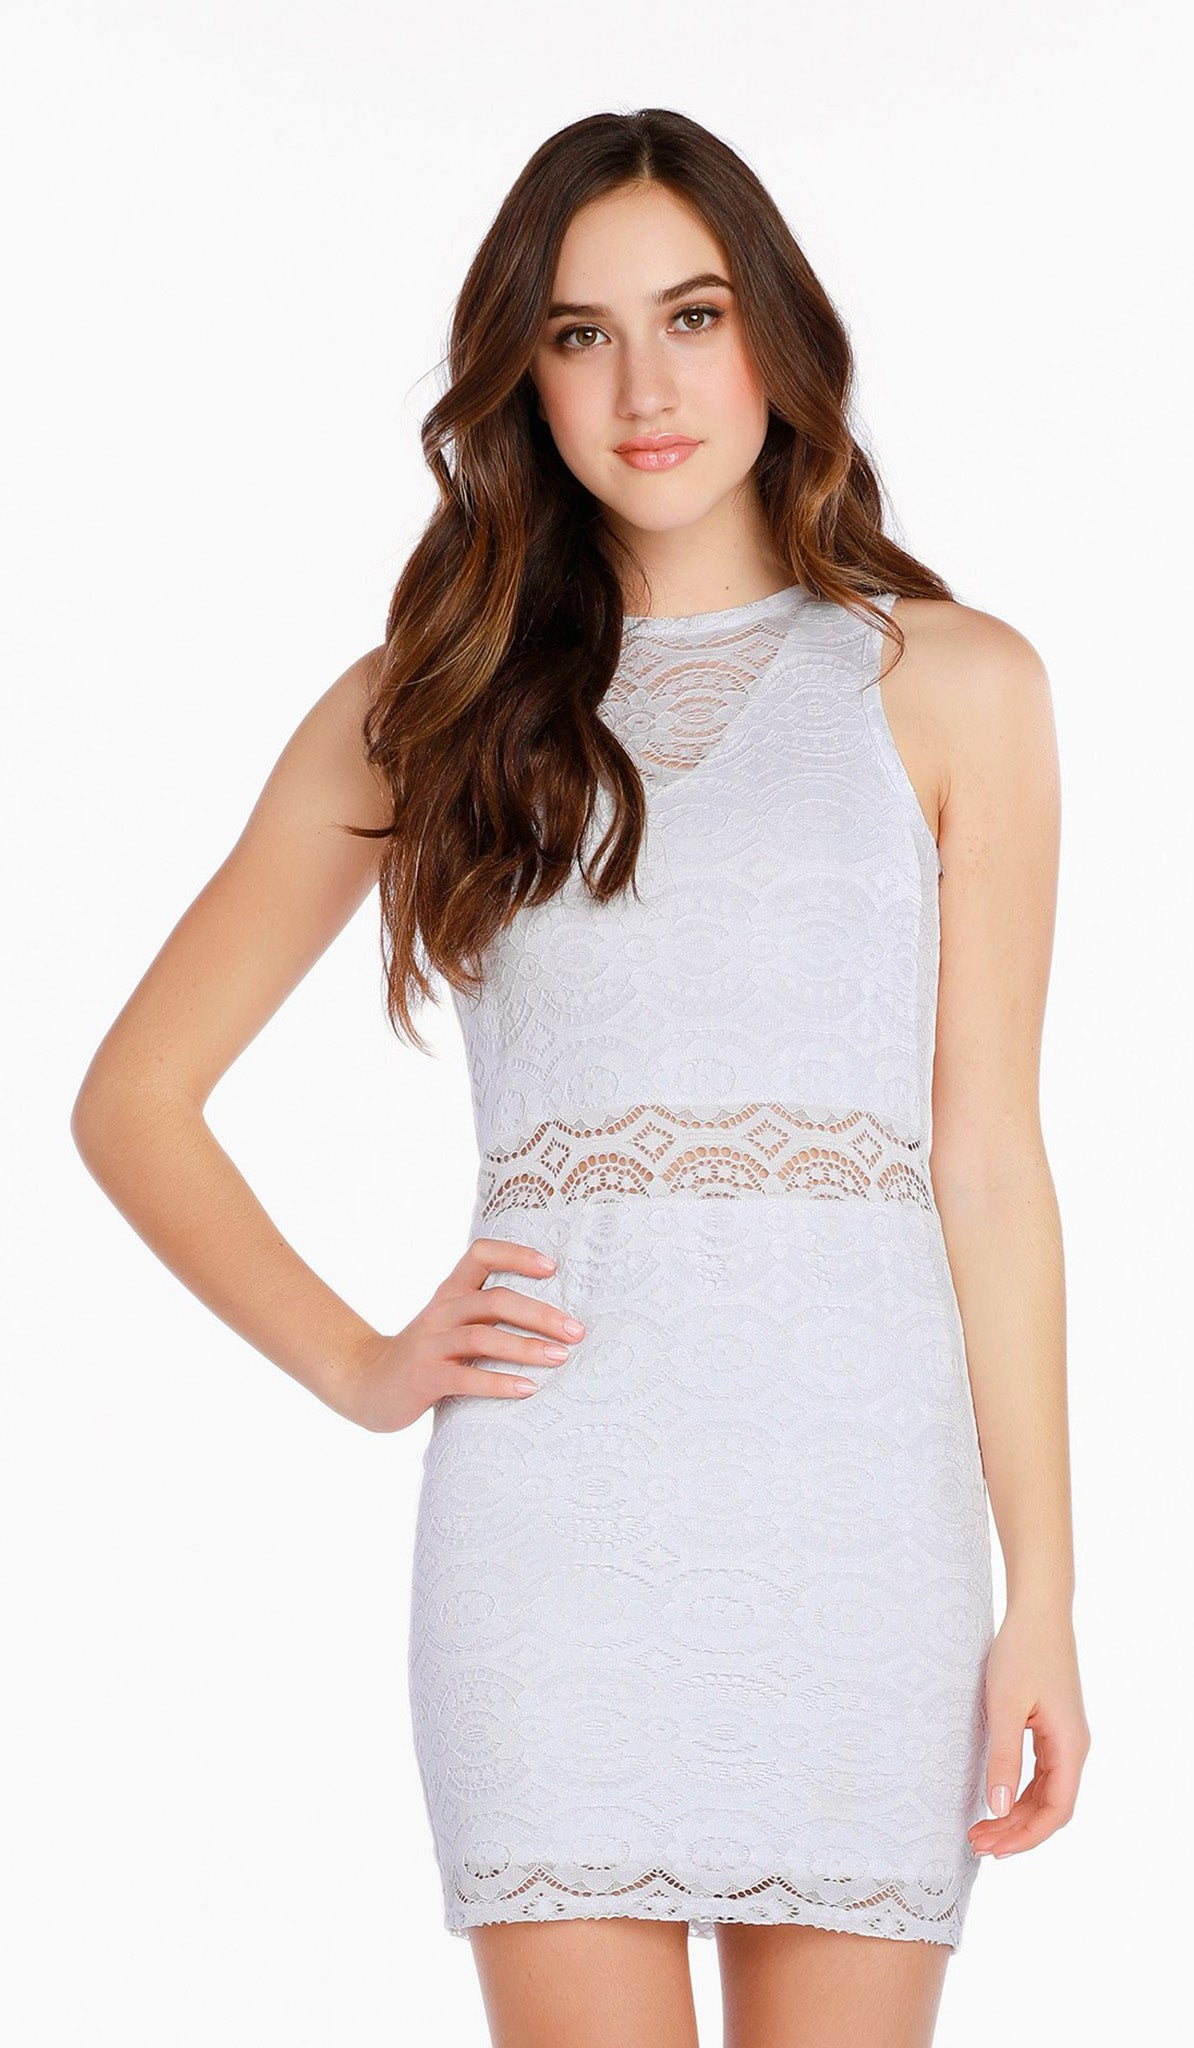 1892199ae1672 The Sally Miller Adriana Dress Juniors - White stretch crochet lace bodycon  dress with illusion waist